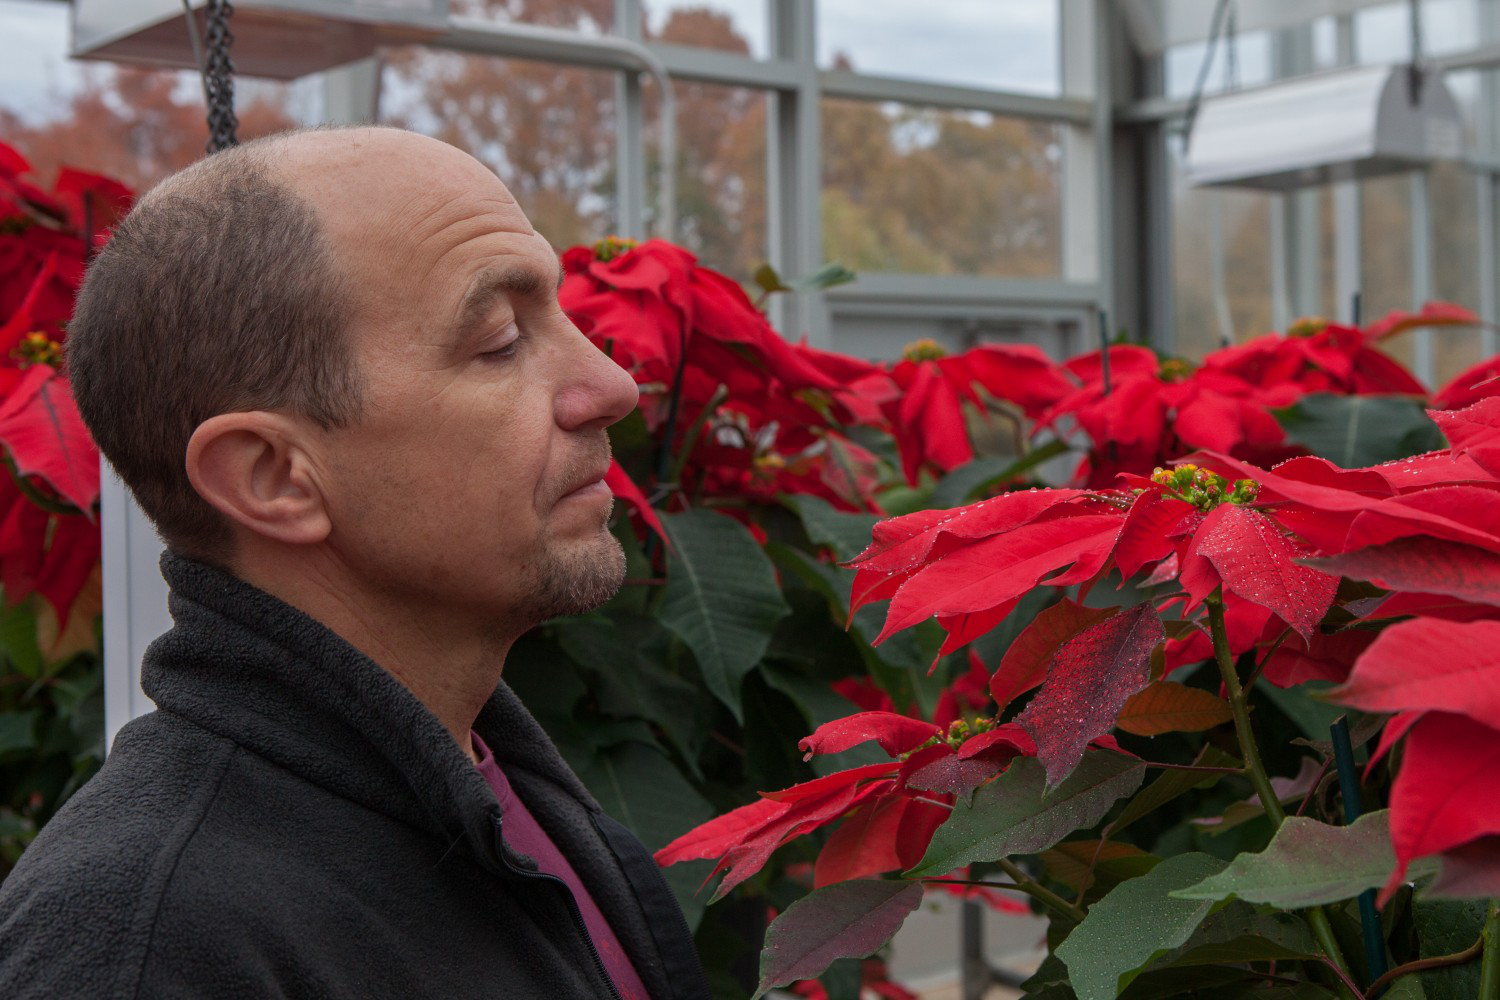 man looking after poinsettas